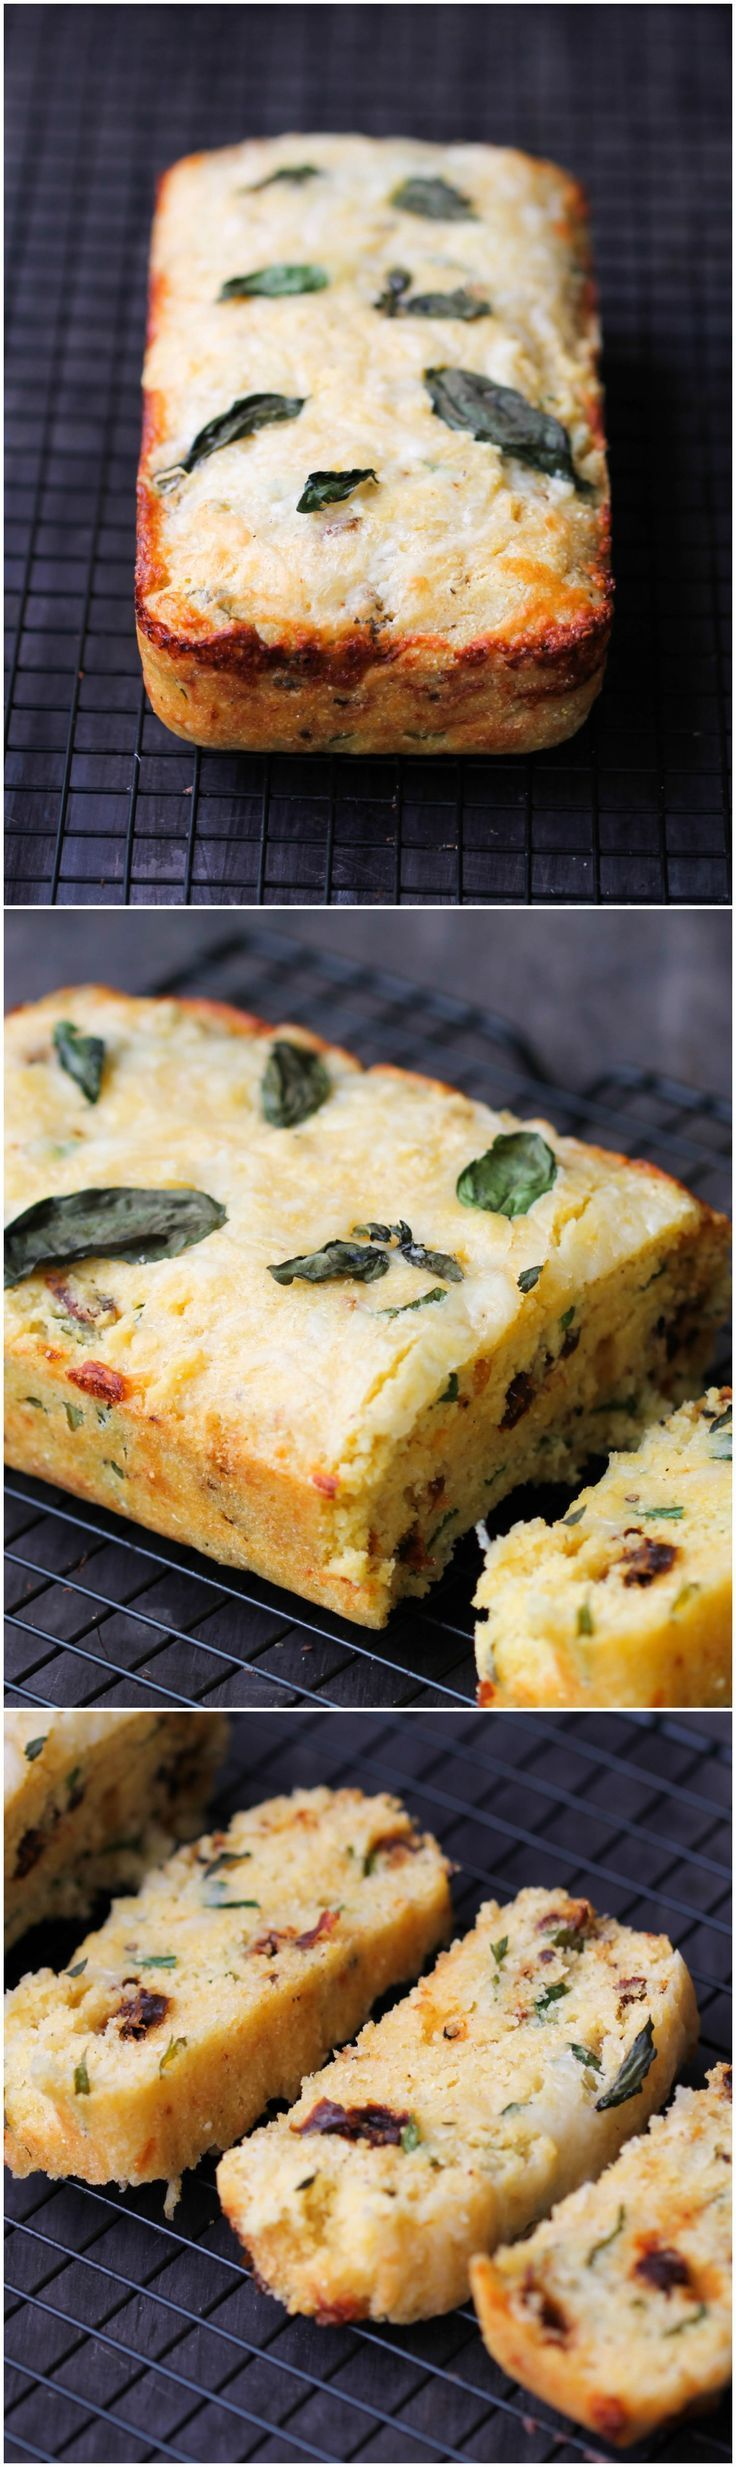 Corn Bread with Sun-Dried Tomatoes, Basil, and Cheese   delicious, fluffy, and easy recipe that everyone will enjoy as a side, with chili, or by itself!